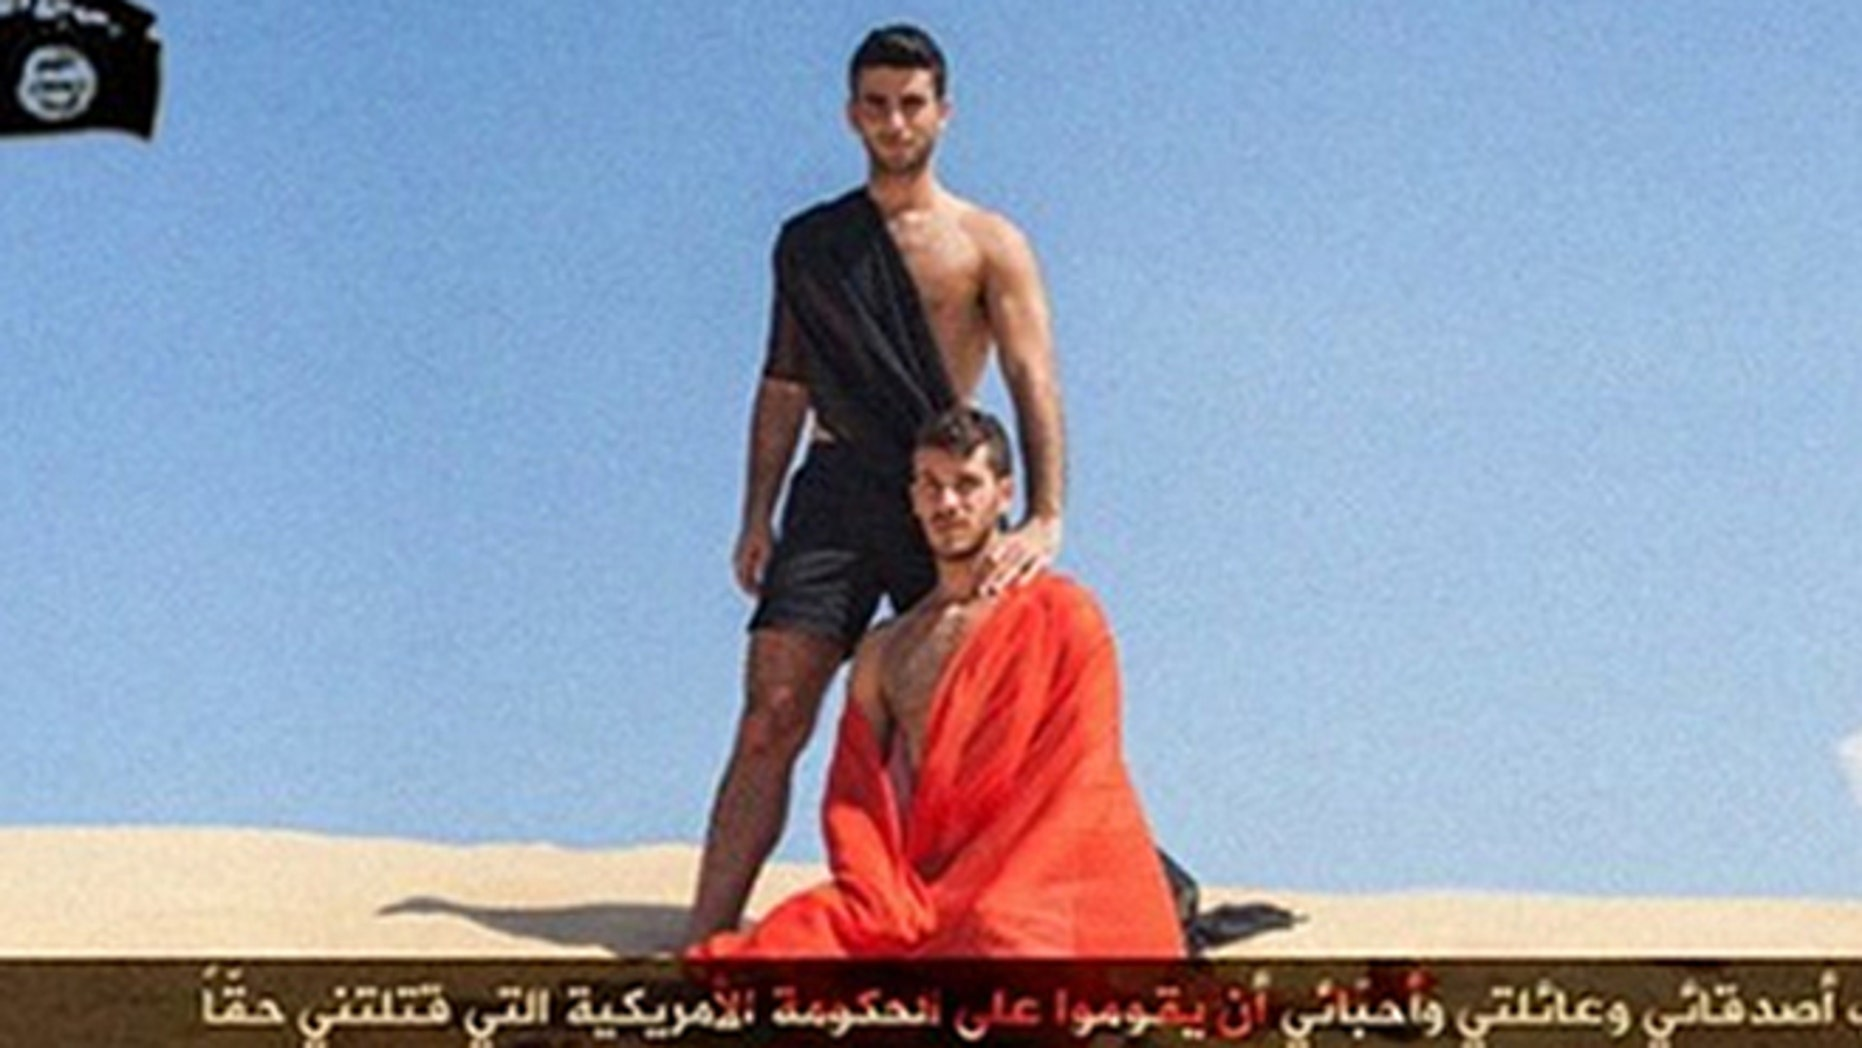 Israeli gay party promoter Drek is under fire for using ISIS-inspired imagery on posters to promote an event.